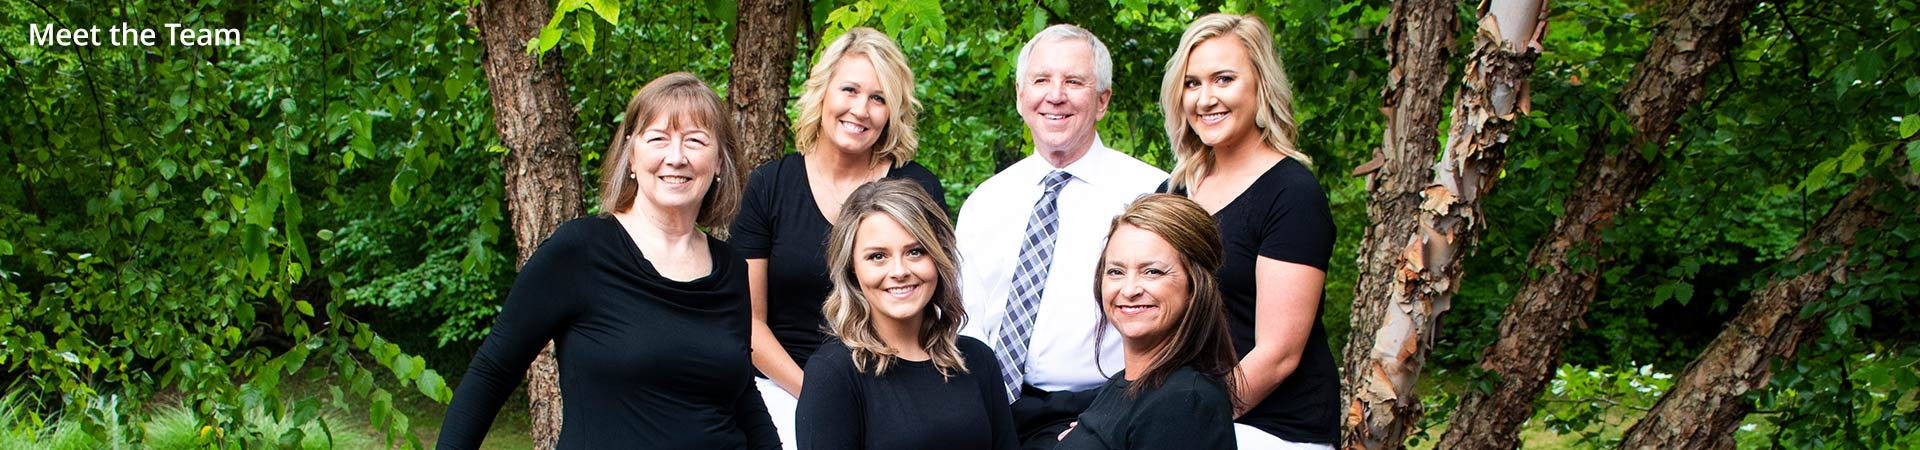 Group Staff Photo Northeast Orthodontic Specialists in Loveland Cincinnati OH